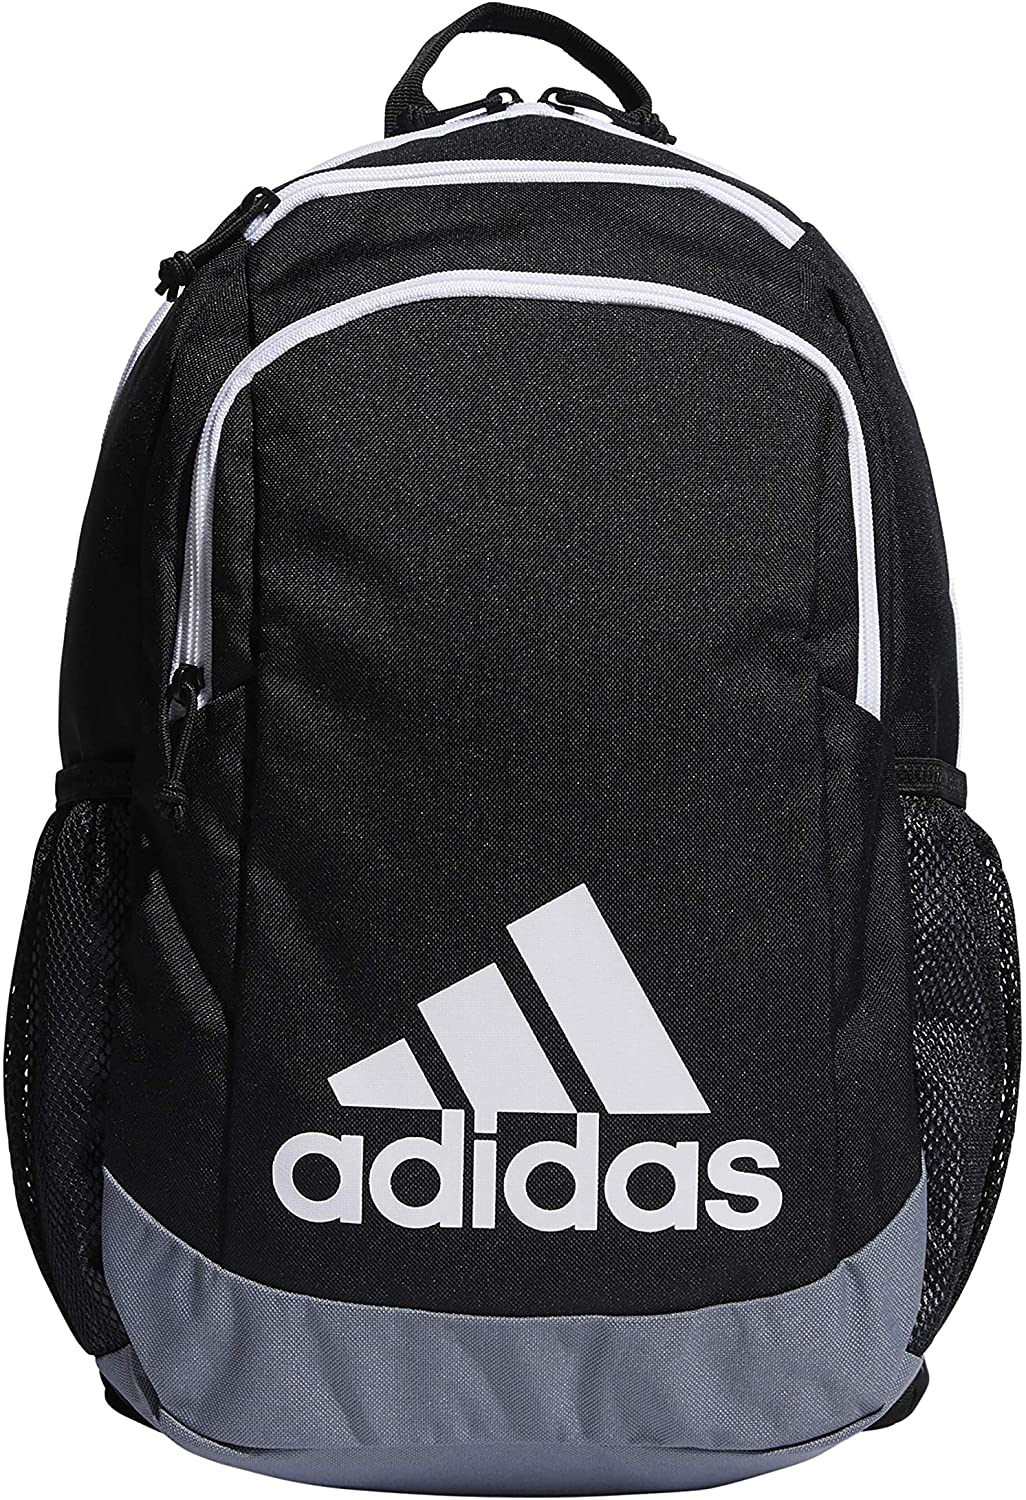 adidas shipfree Kid's-Boy's Girl's New arrival Creator Backpack Young